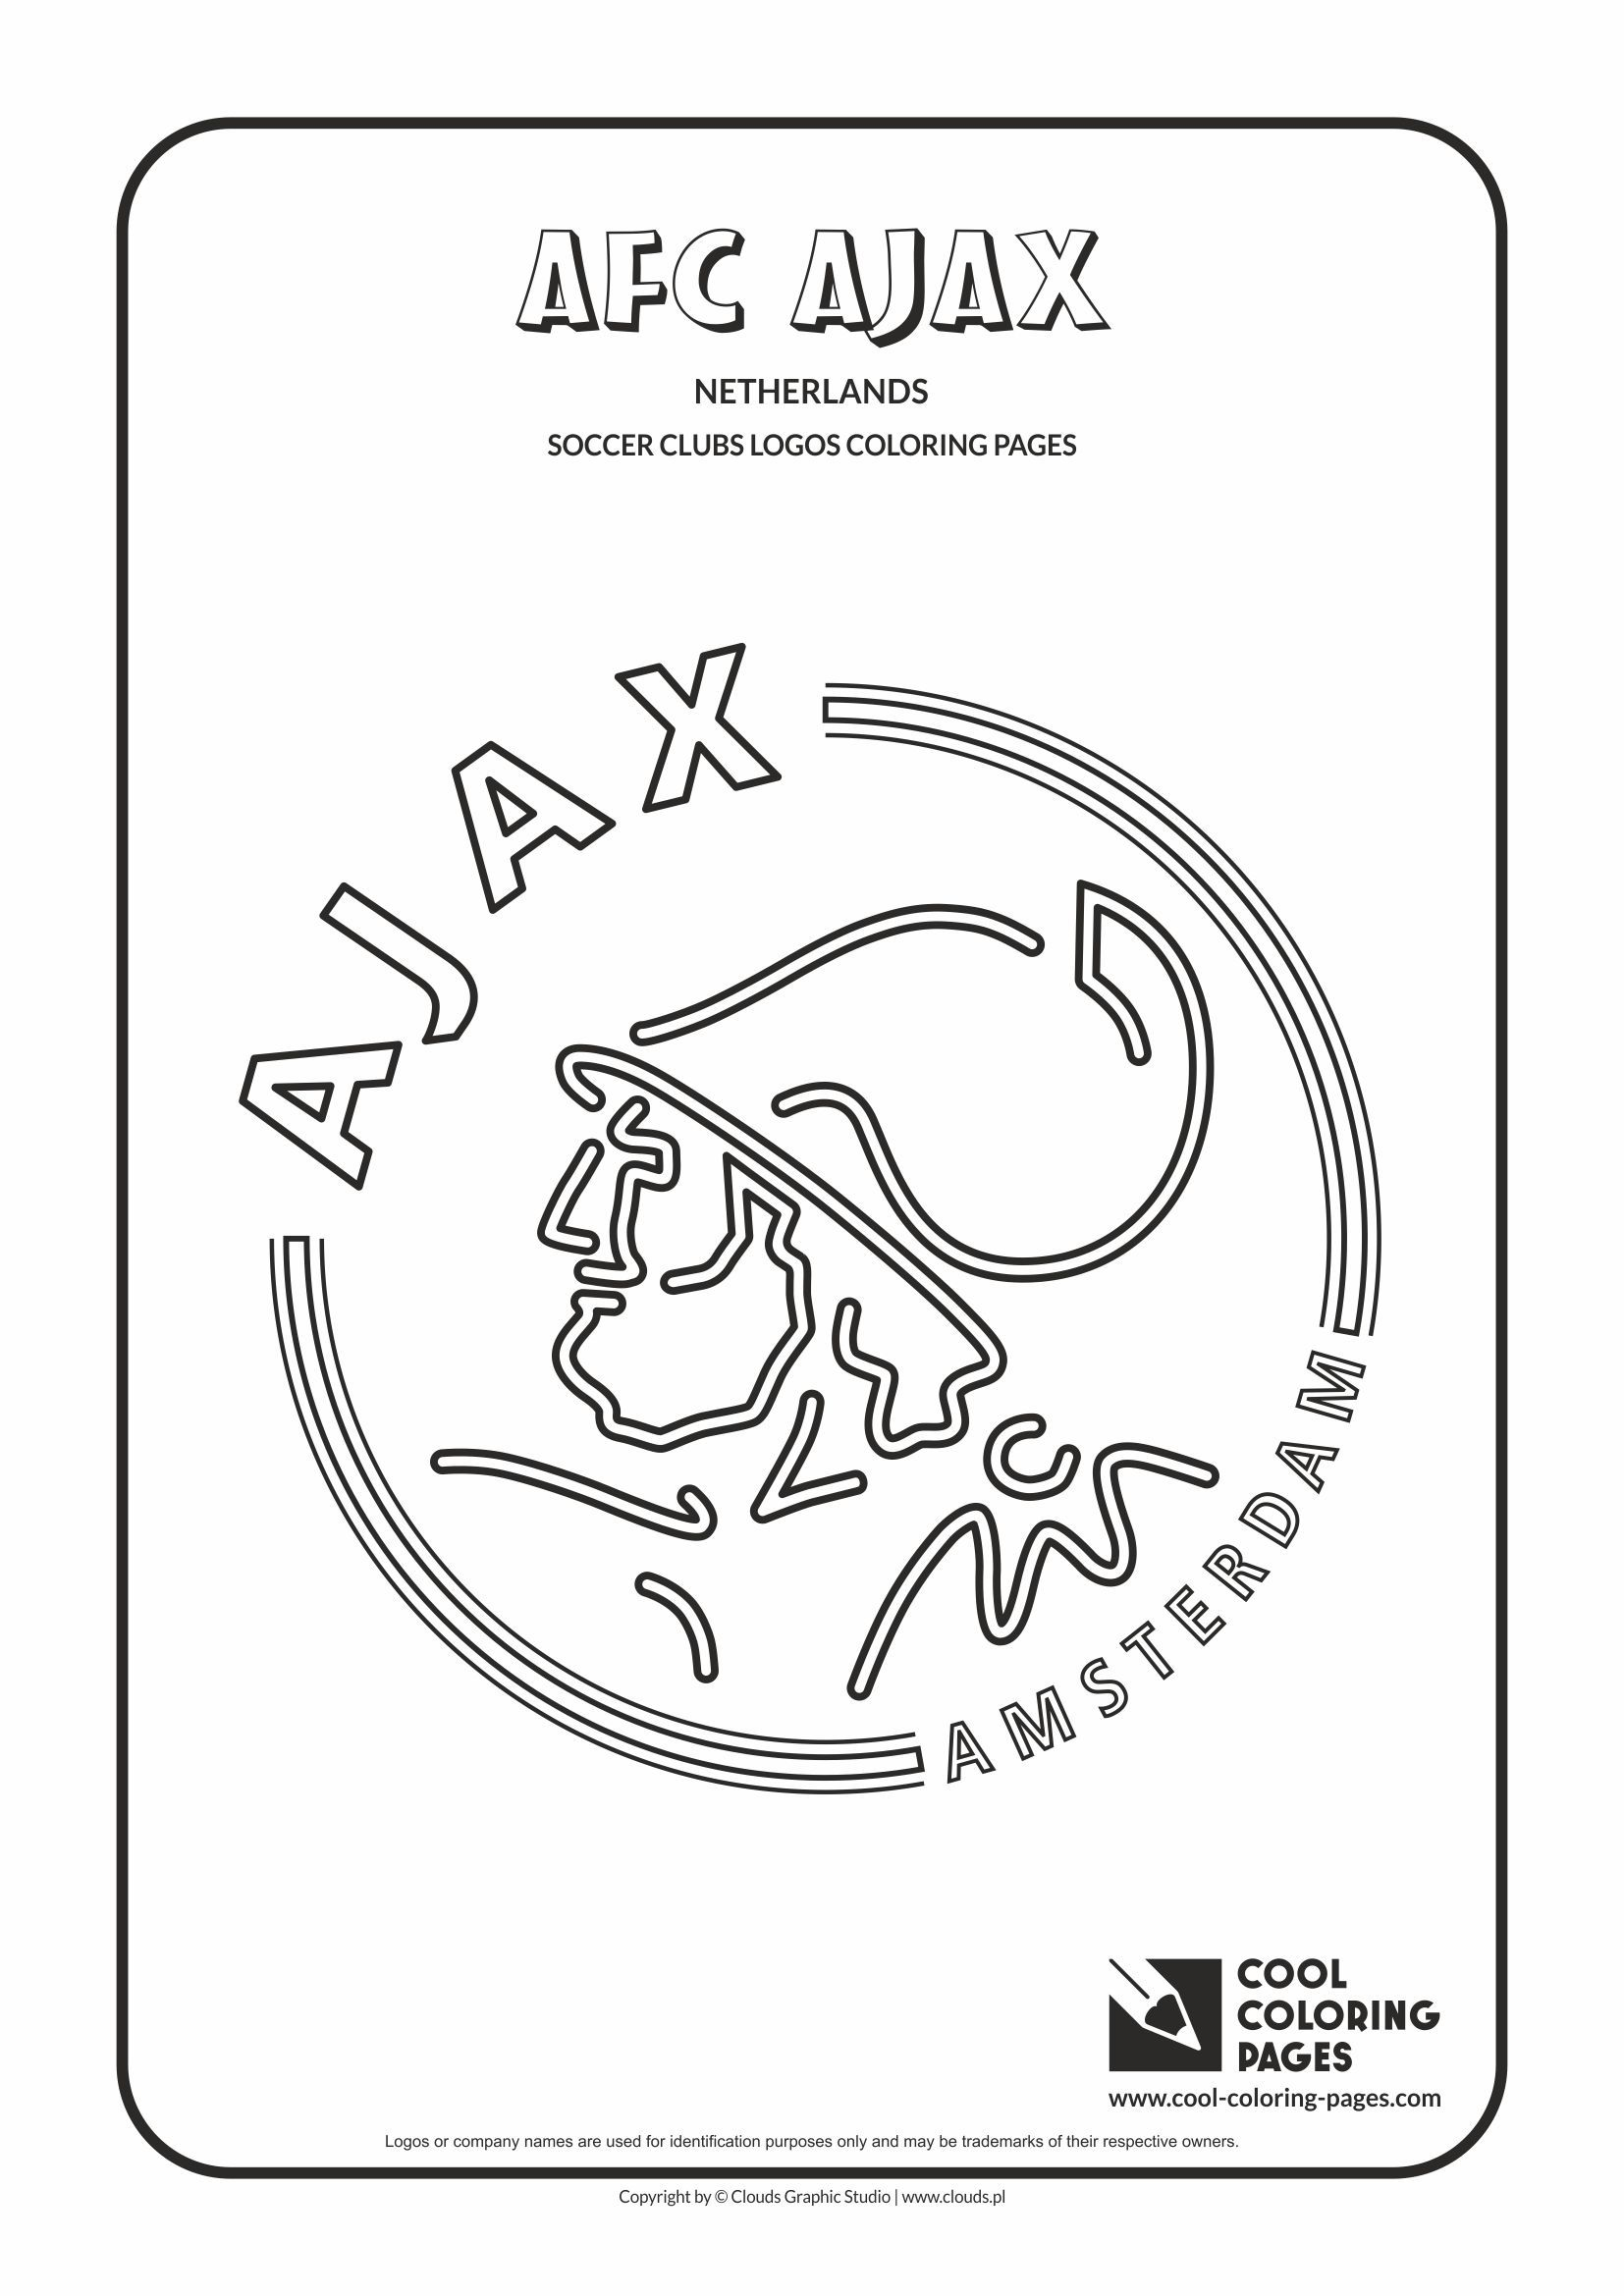 Cool Coloring Pages Soccer Clubs Logos AFC Ajax logo Coloring page with AFC